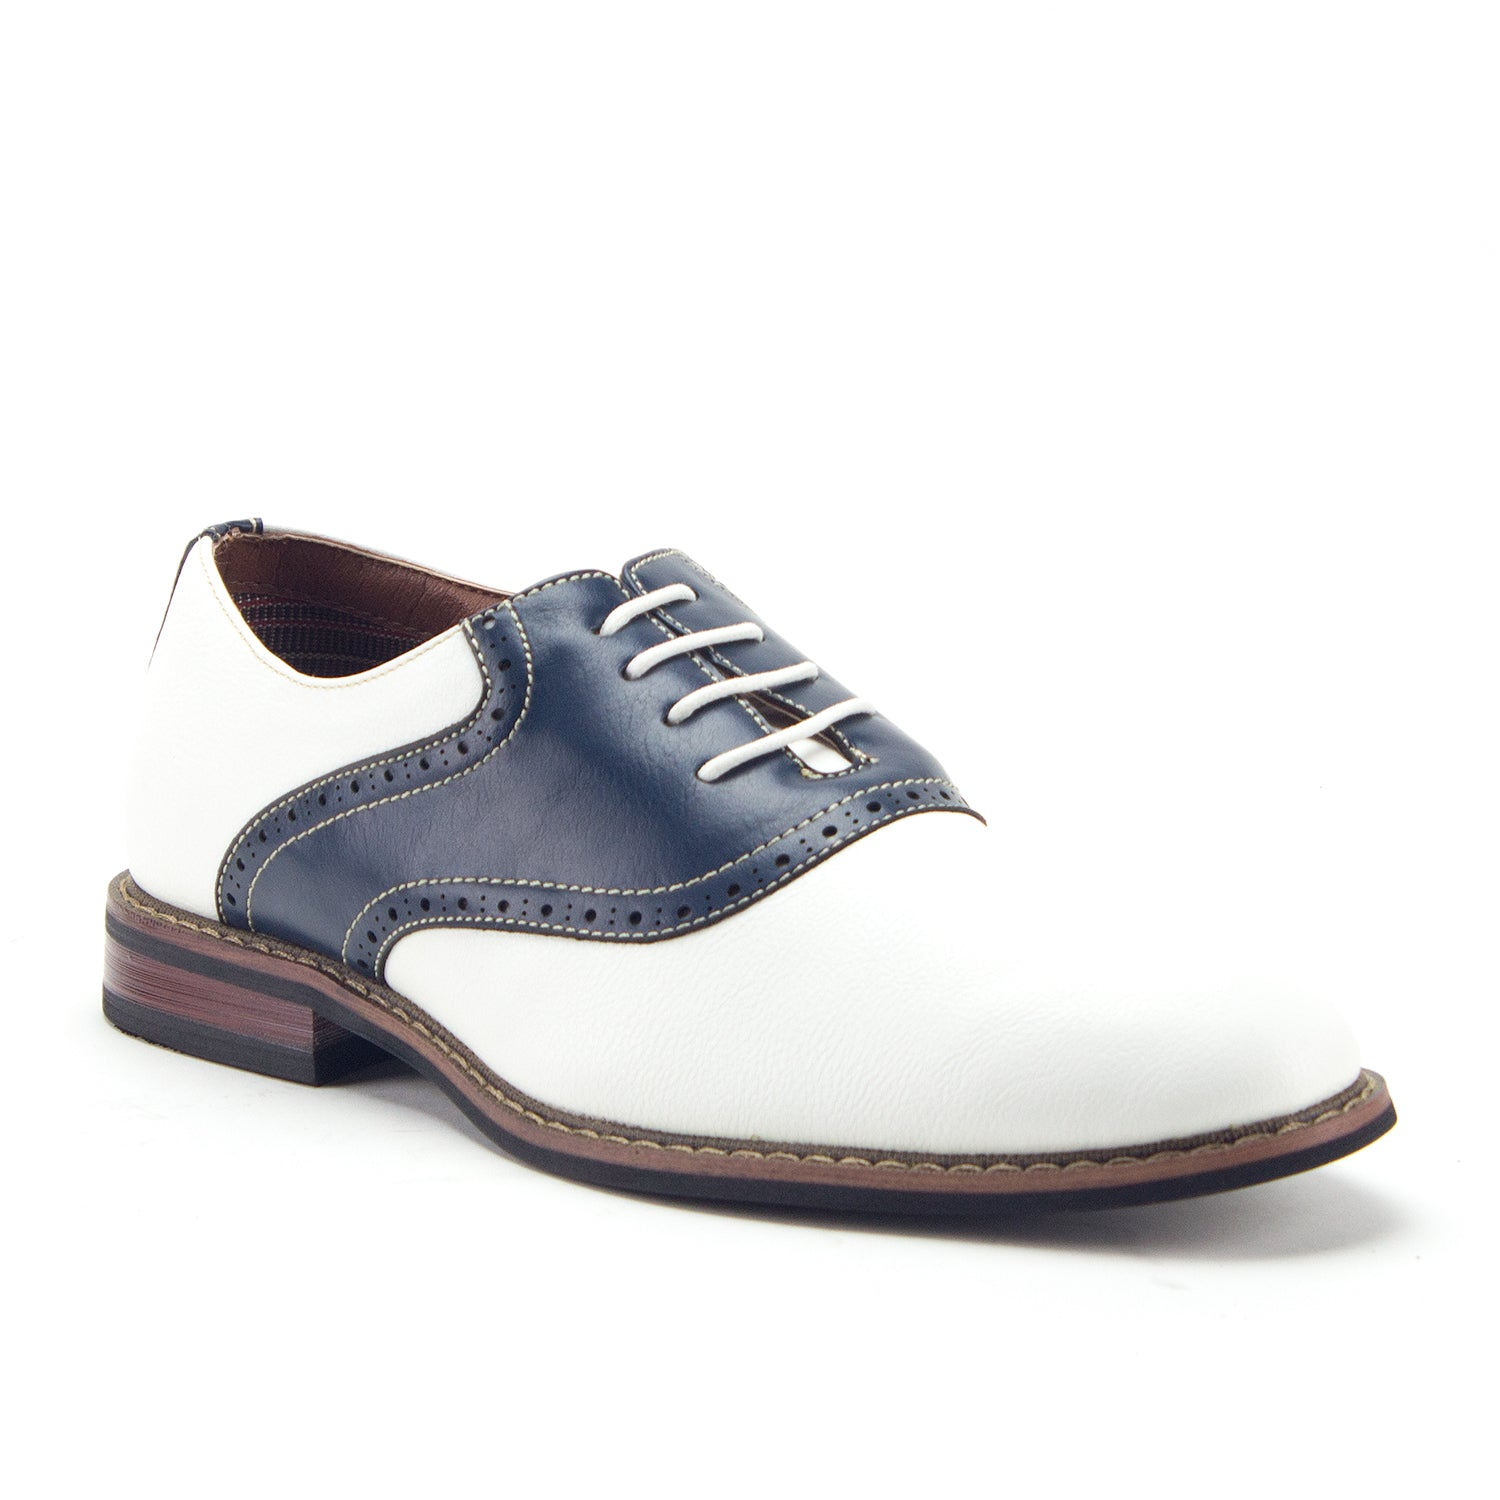 Two Tone Saddle Dress Oxfords Shoes